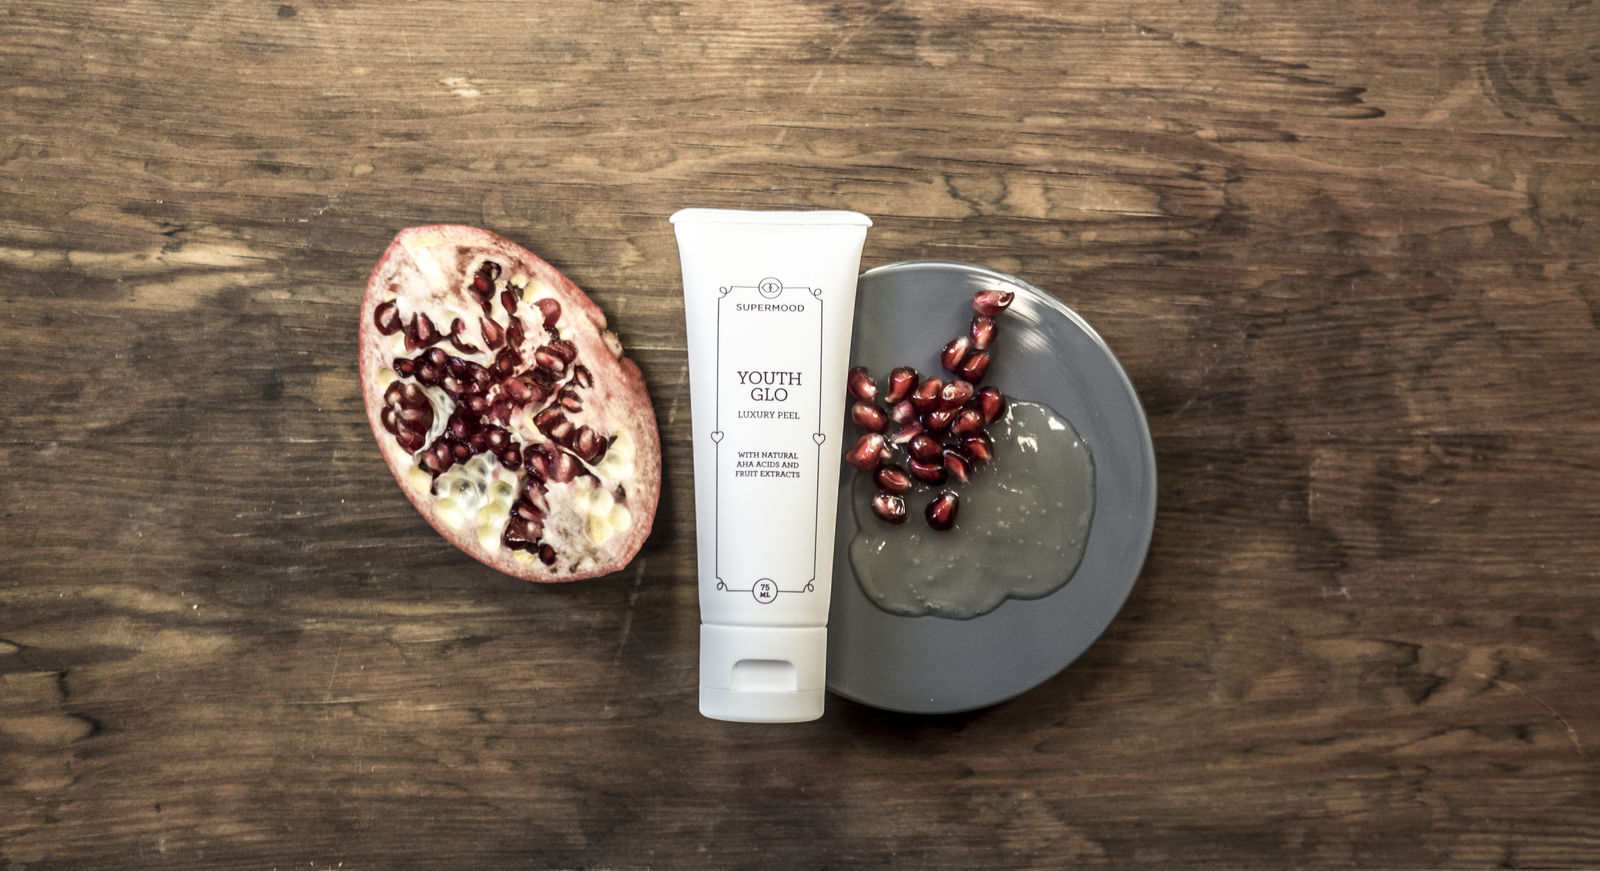 Youth Glo: luxury peel with AHA acids and fruit extracts.